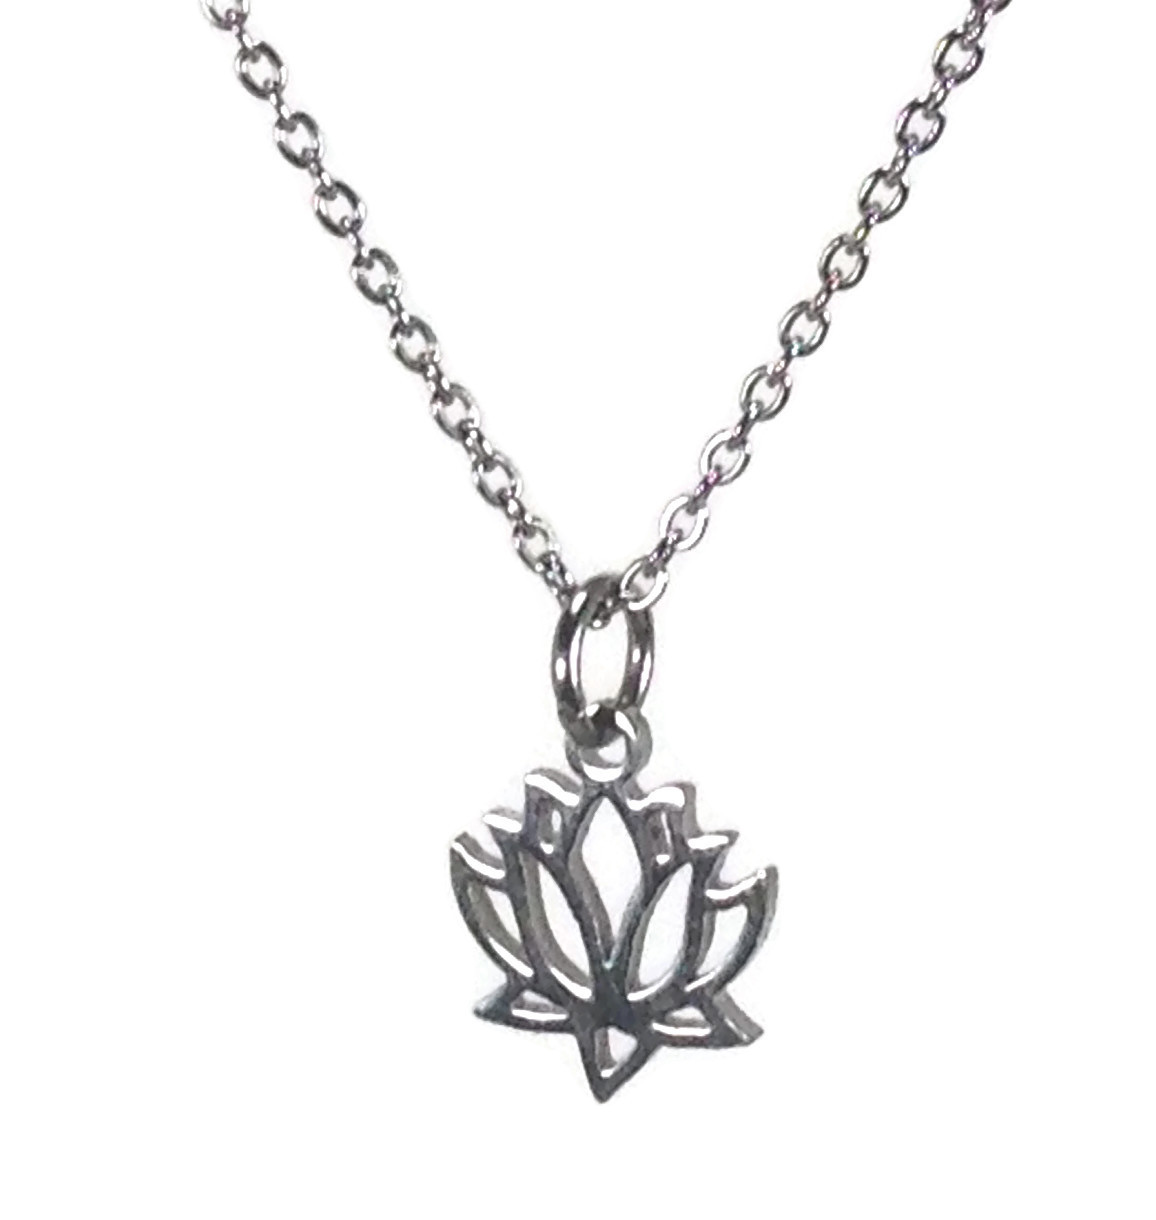 lotus pendant necklace in stainless steel